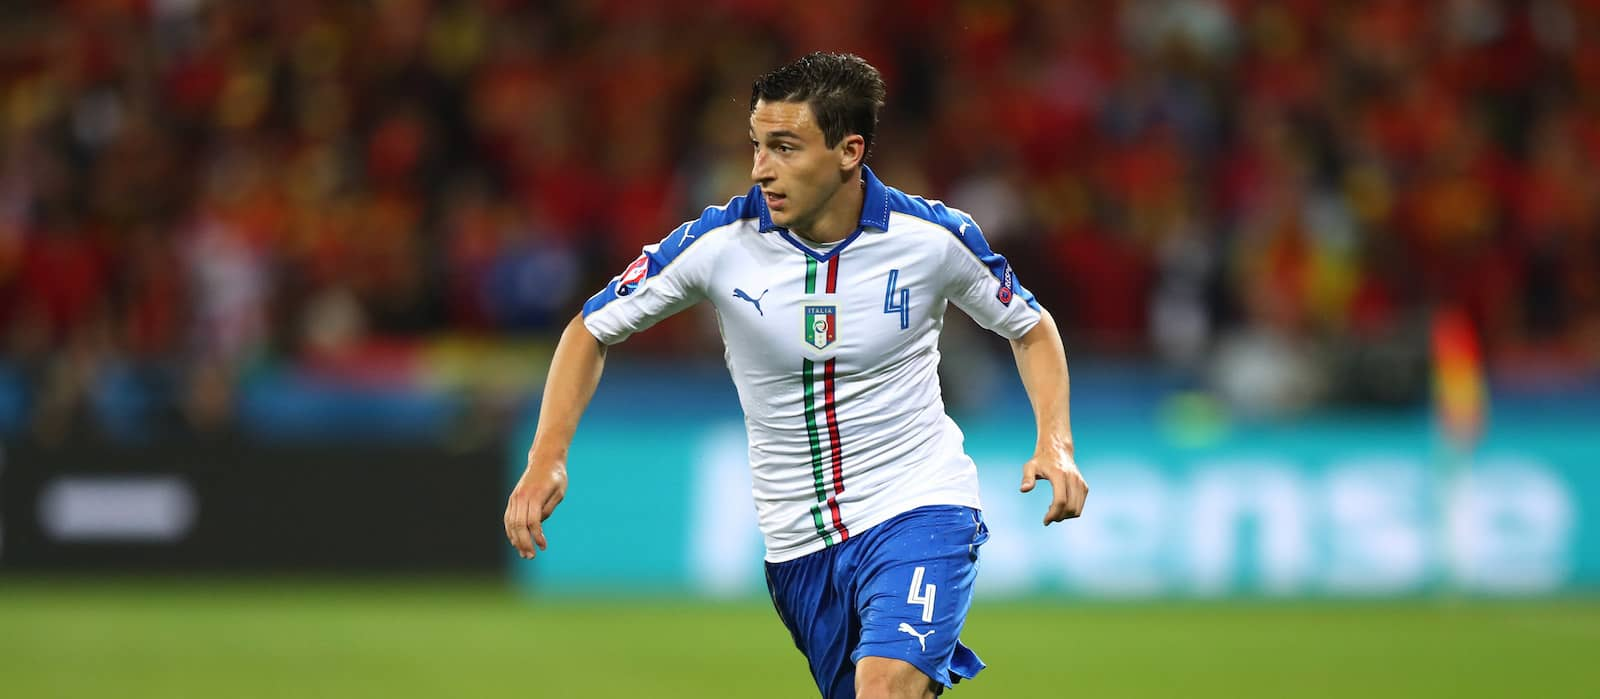 Inter Milan make final push for Manchester United's Matteo Darmian – report